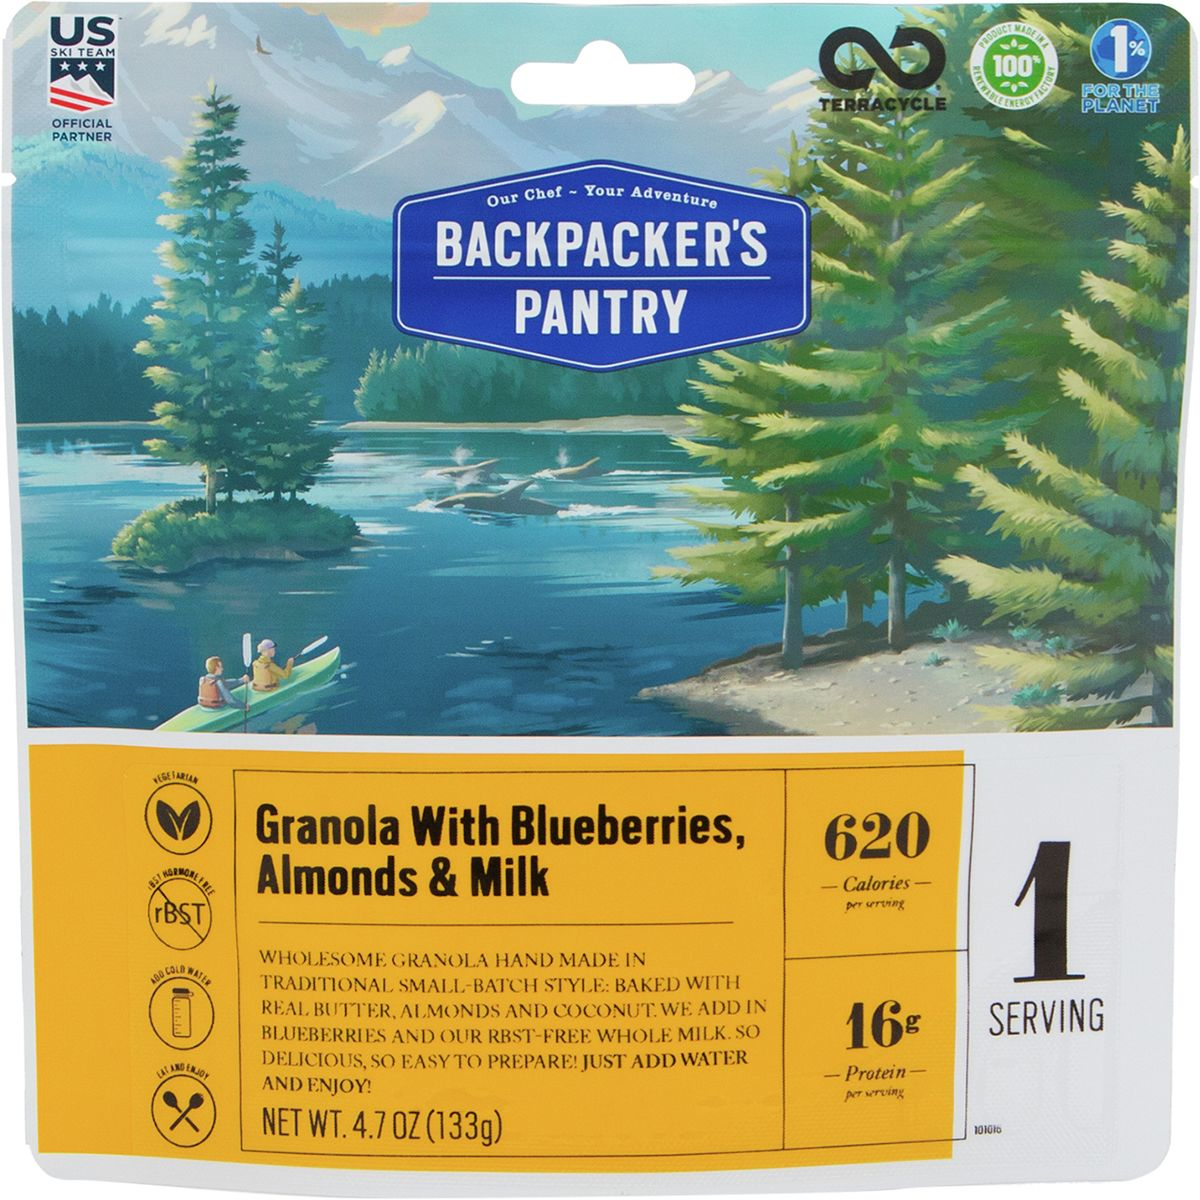 Backpacker's Pantry Granola with Milk and Blueberries